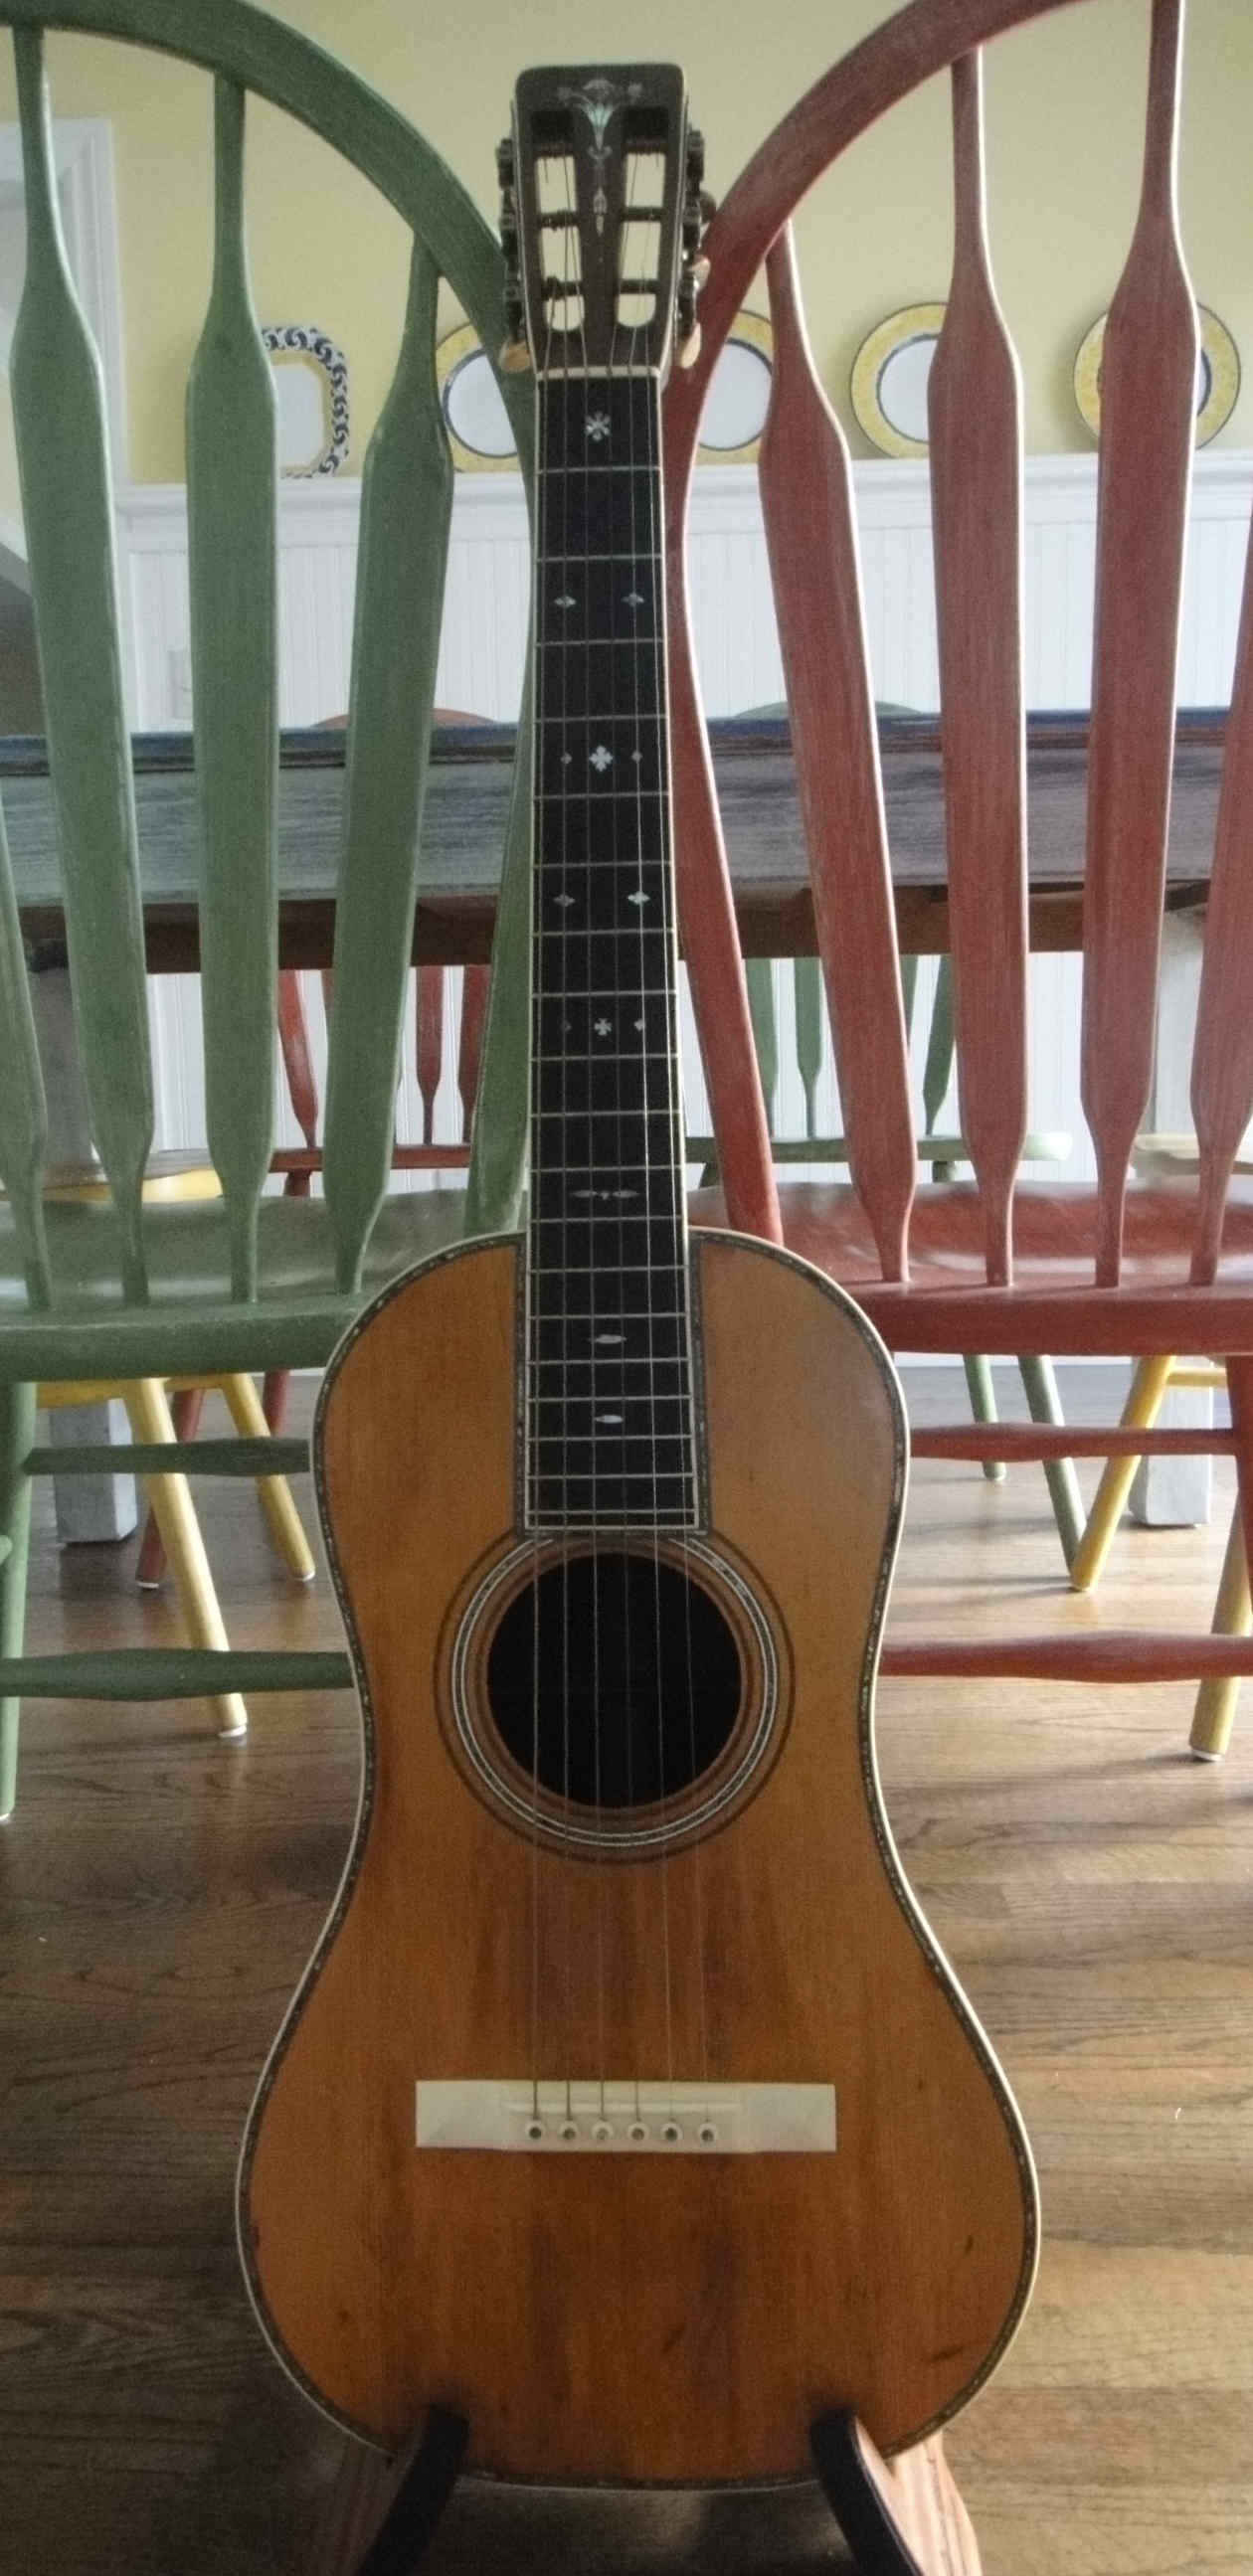 1919 Ditson 145 Guitar (baby D45), Serial Number 466  The Guitarphile